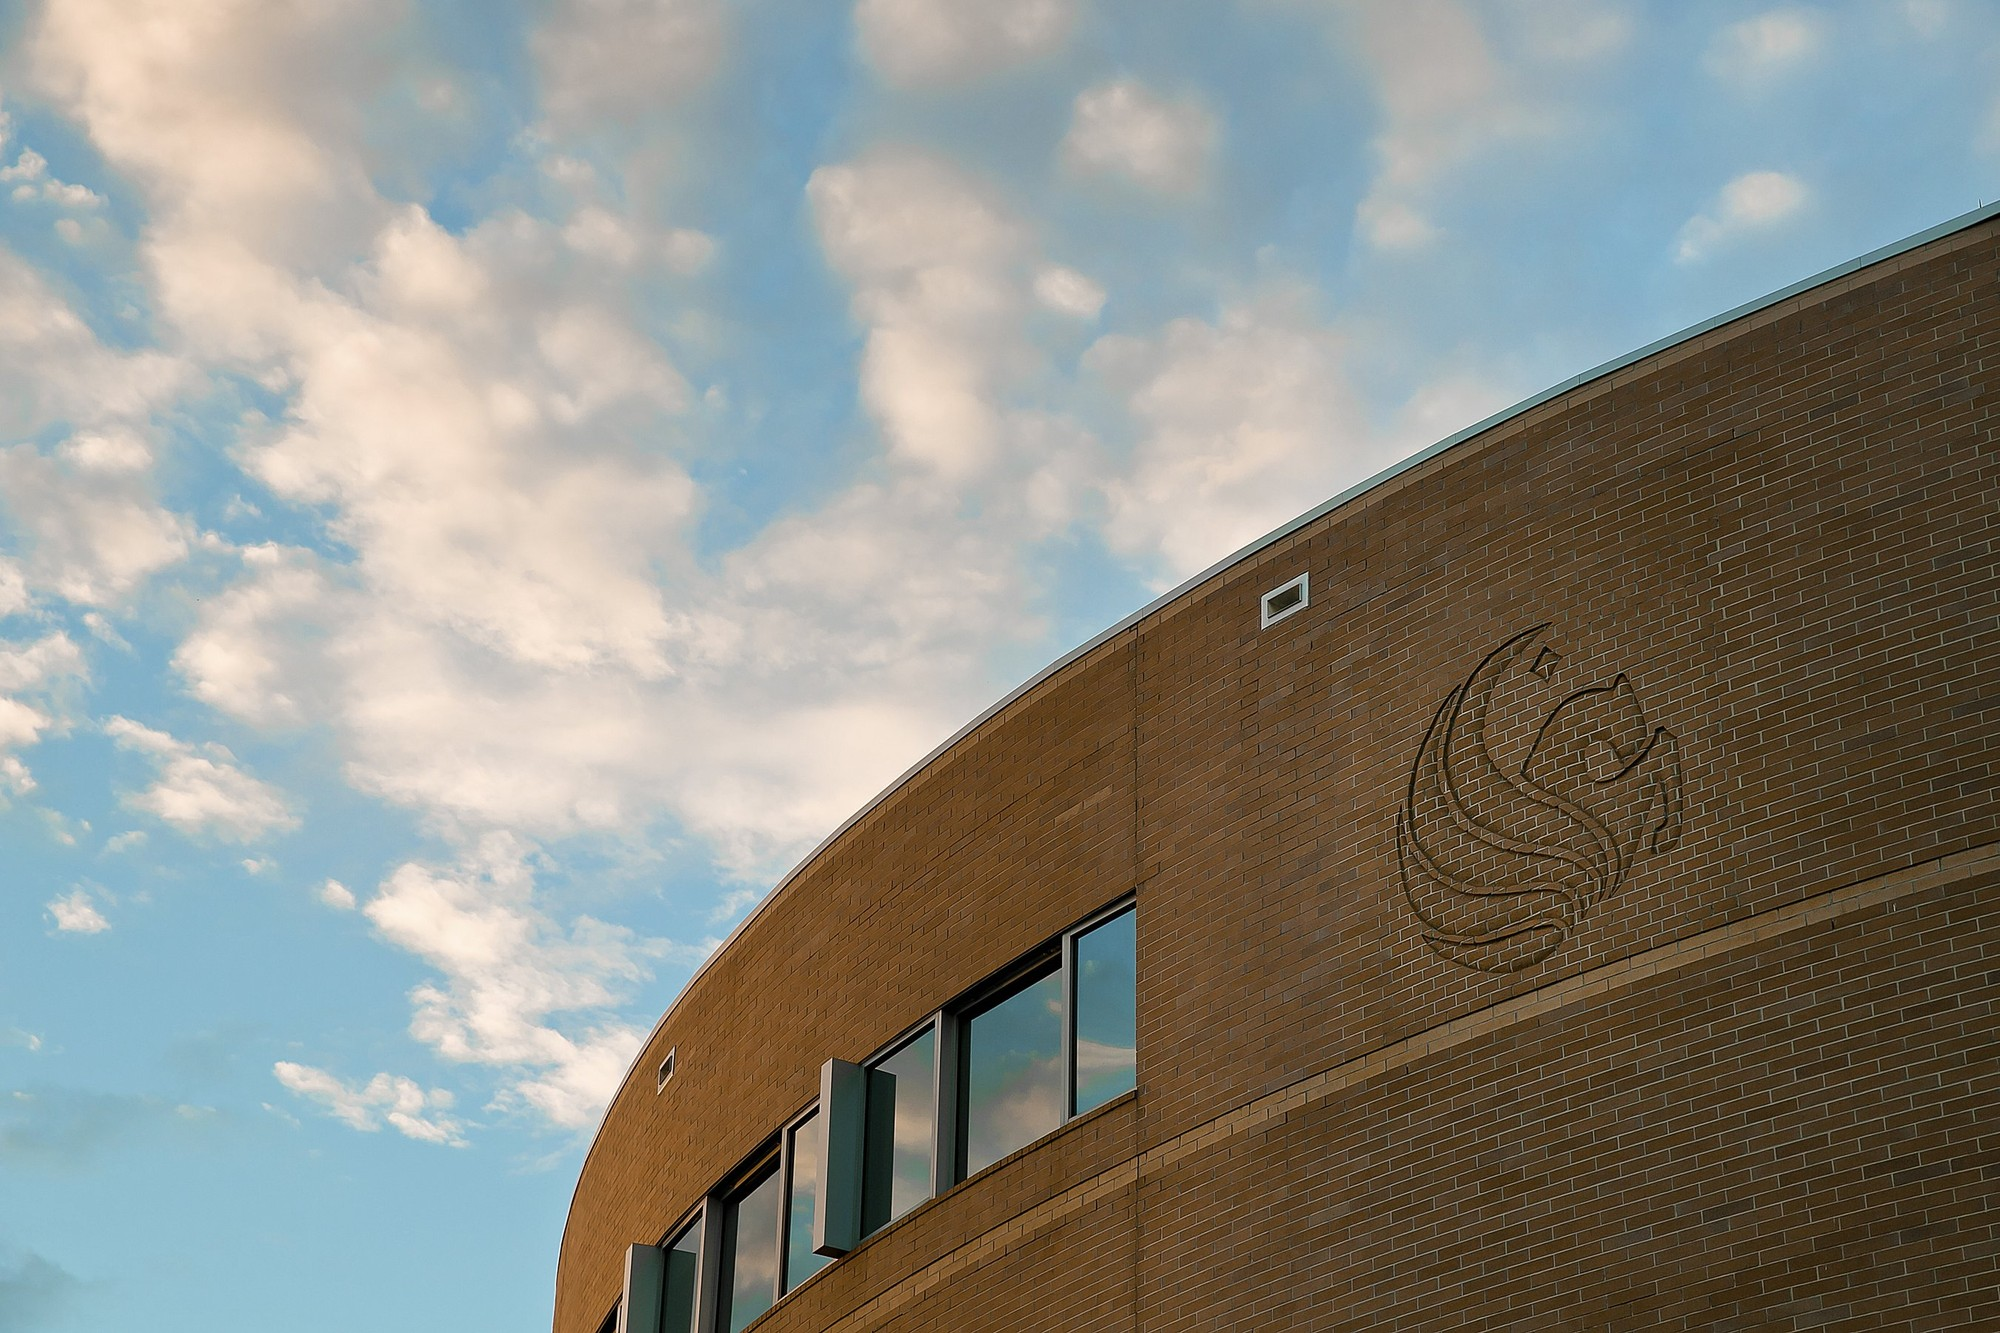 Up close image of the UCF logo on a campus building